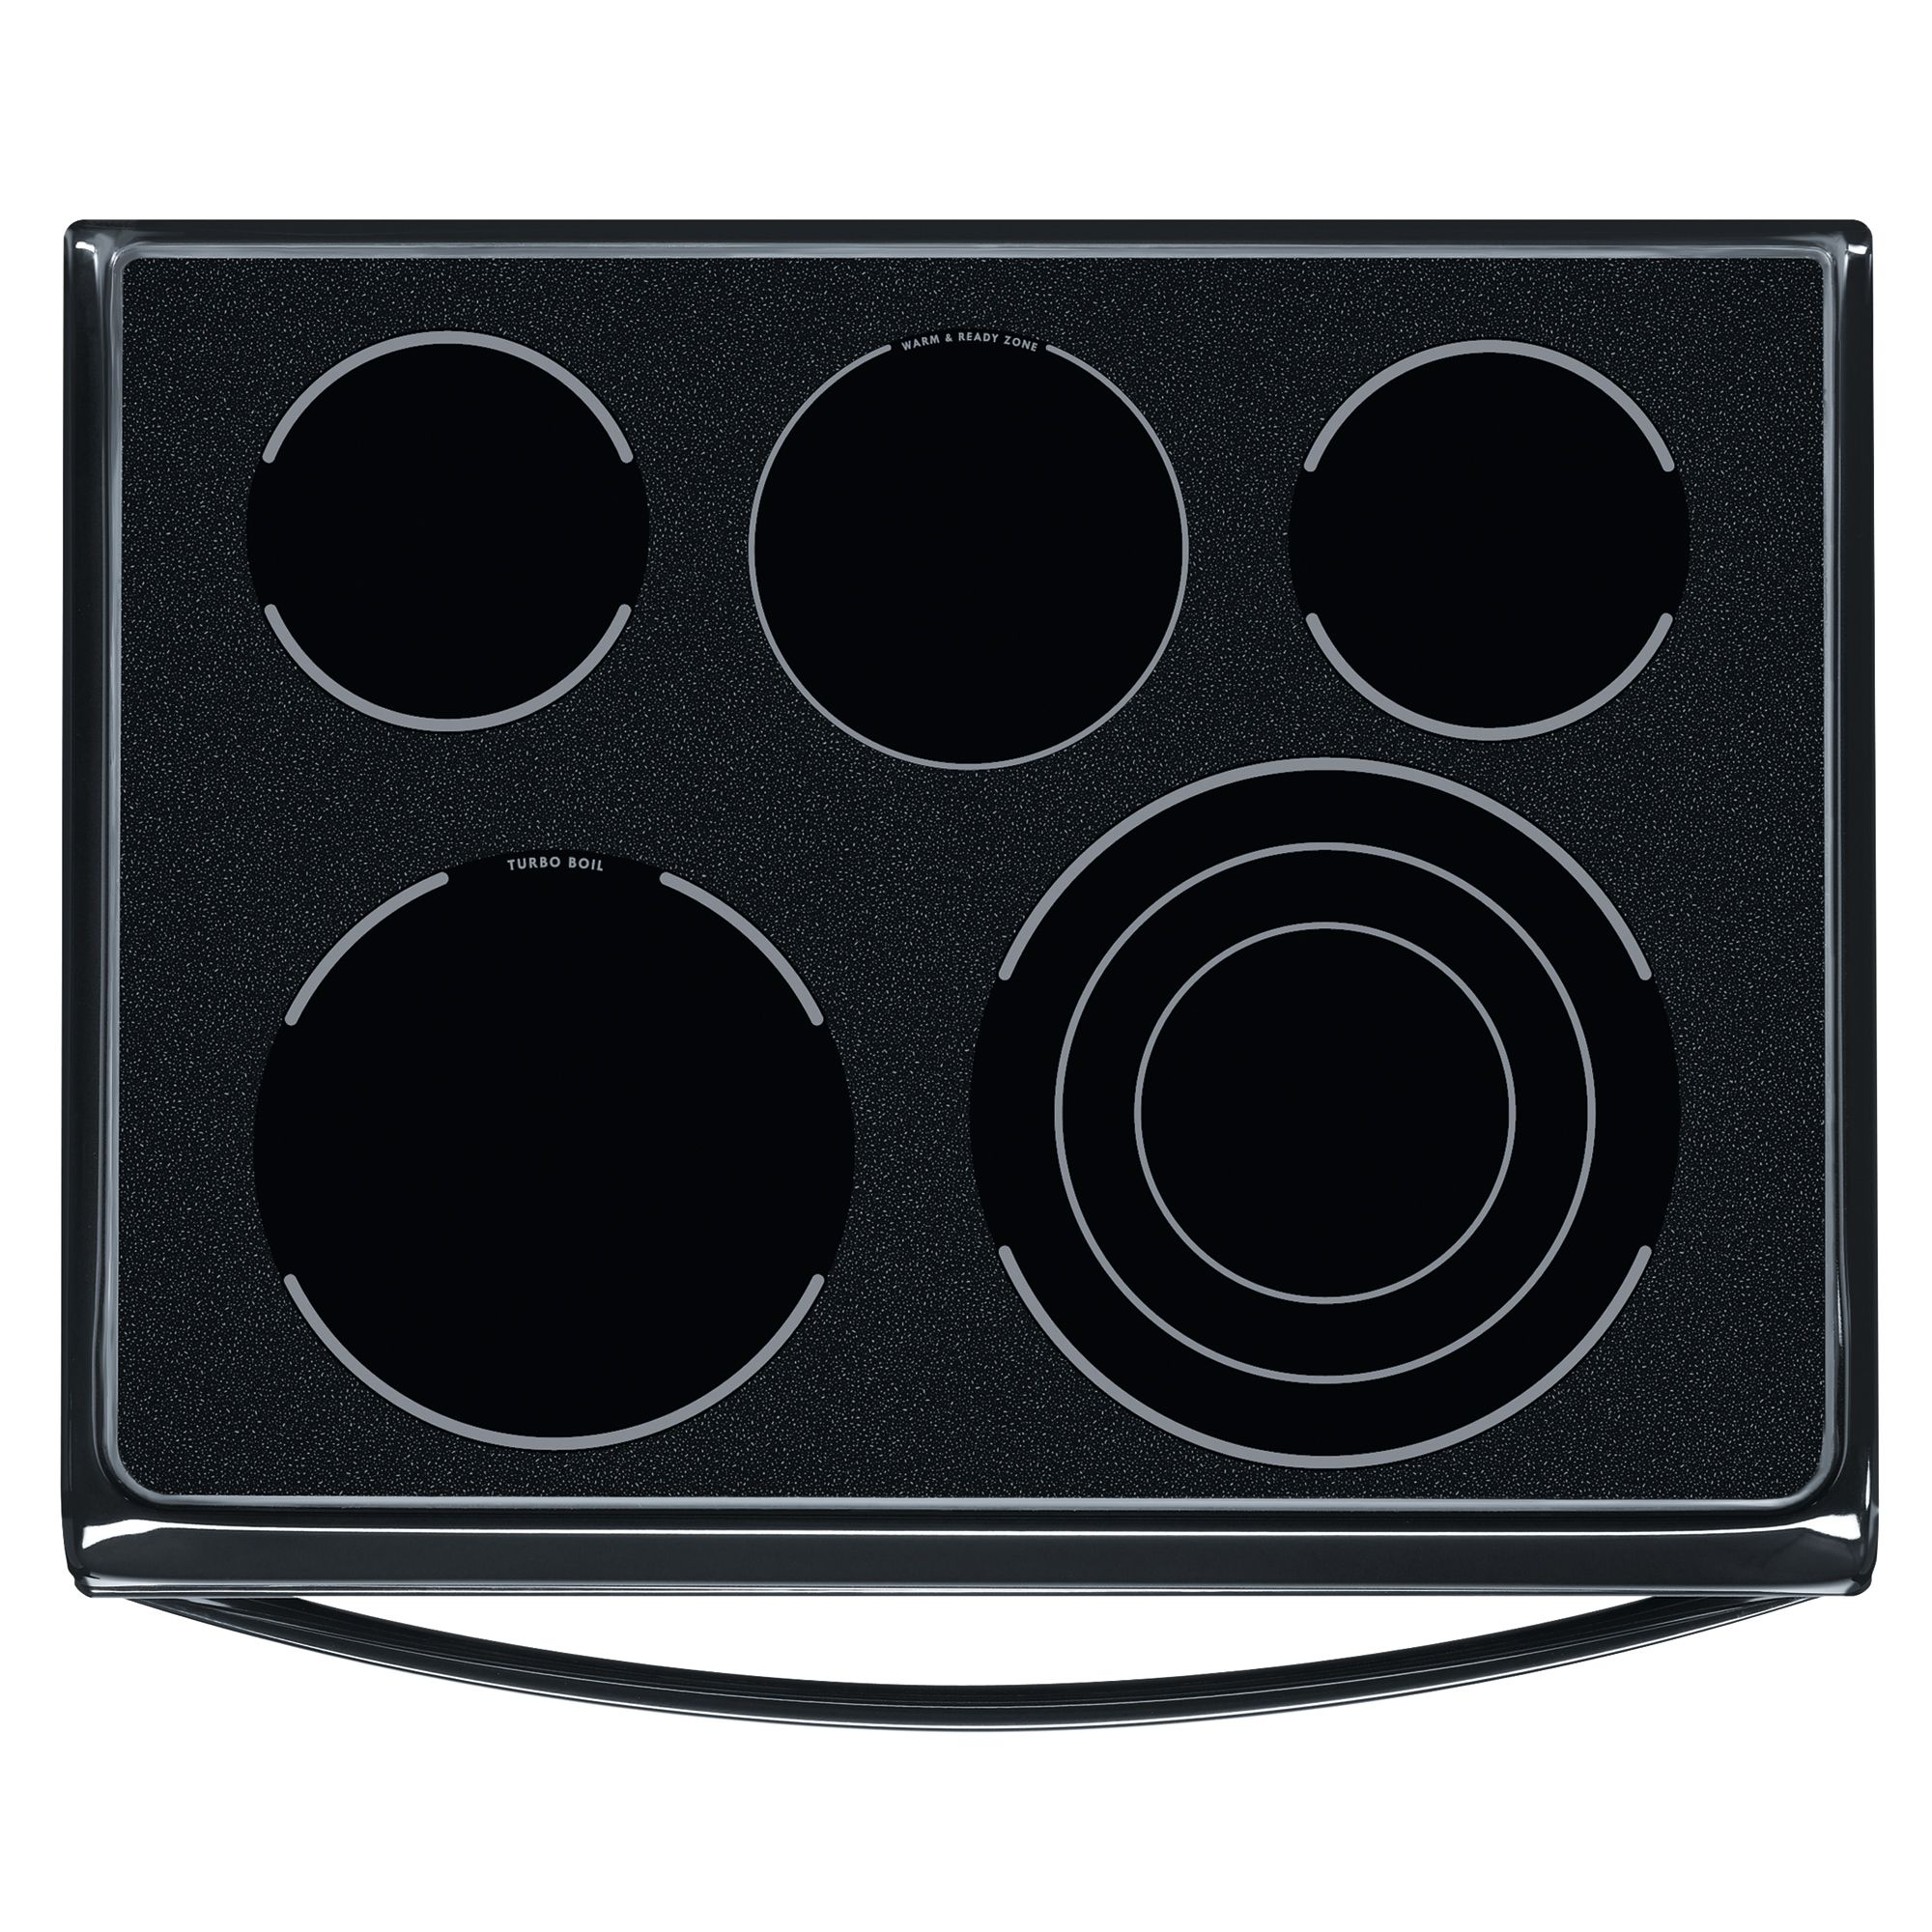 Kenmore 6.1 cu. ft. Electric Range w/ Convection - Black